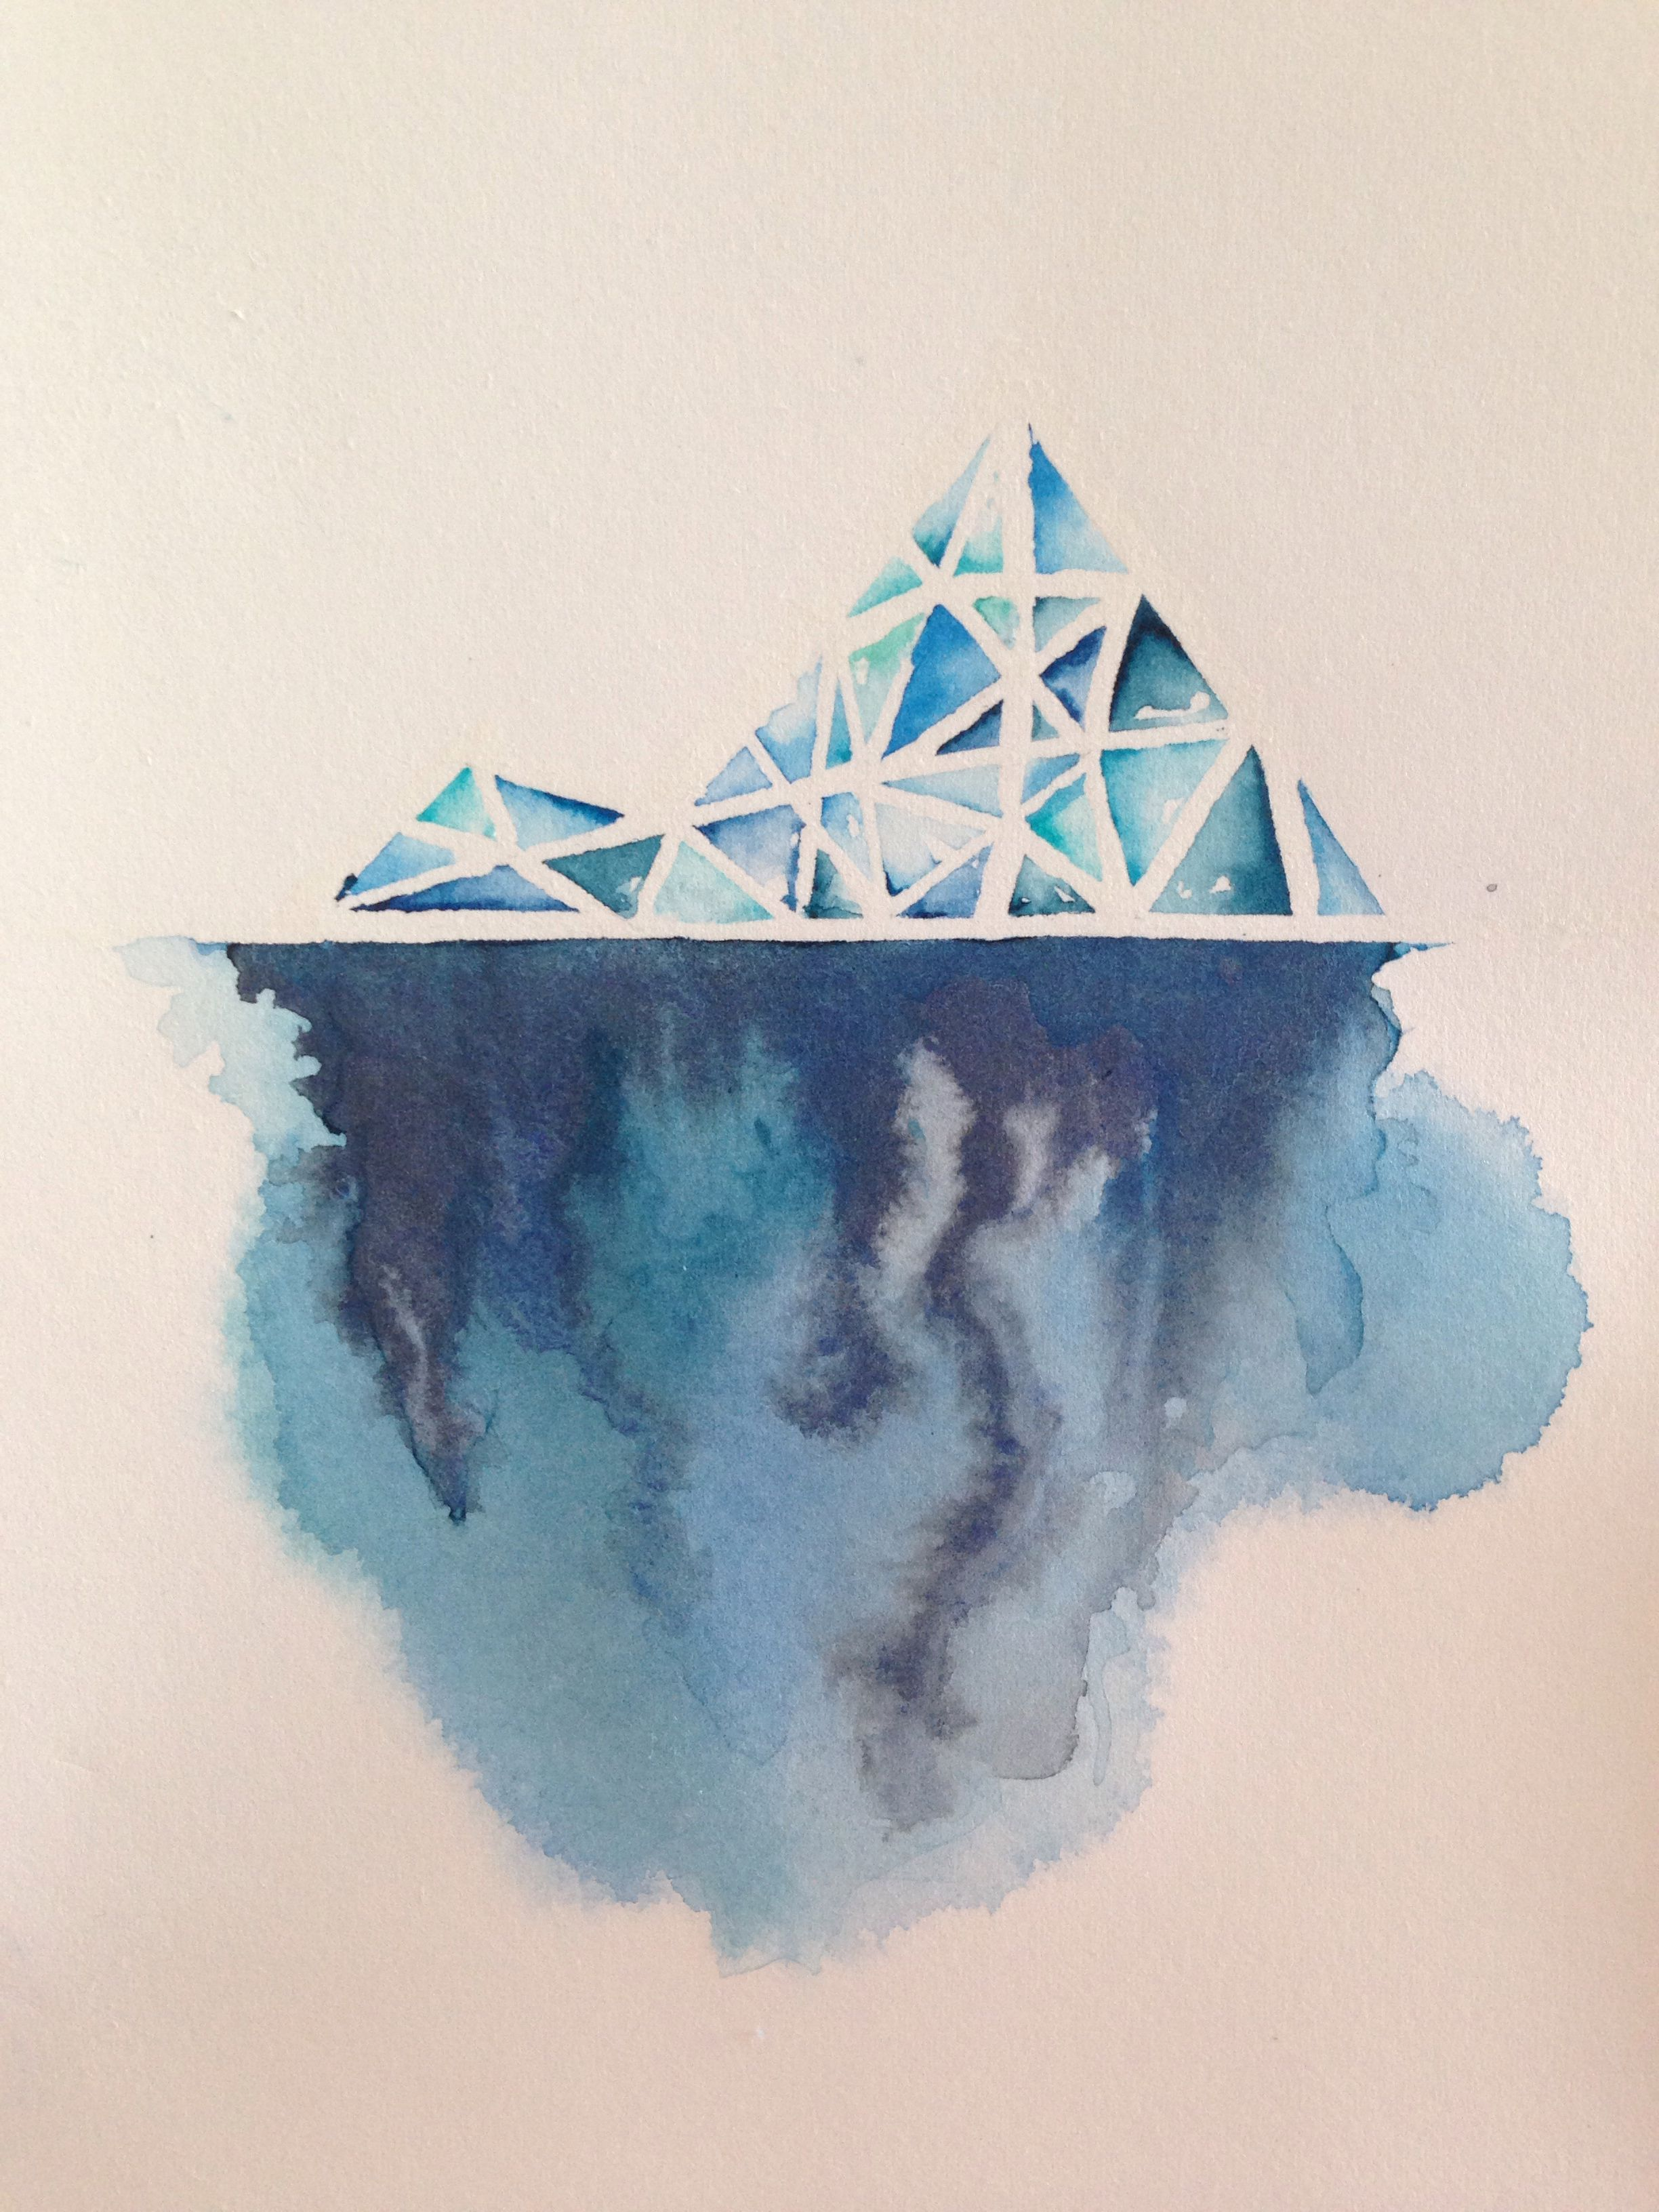 Line Drawing With Watercolor : Iceberg series the storm beneath original watercolor